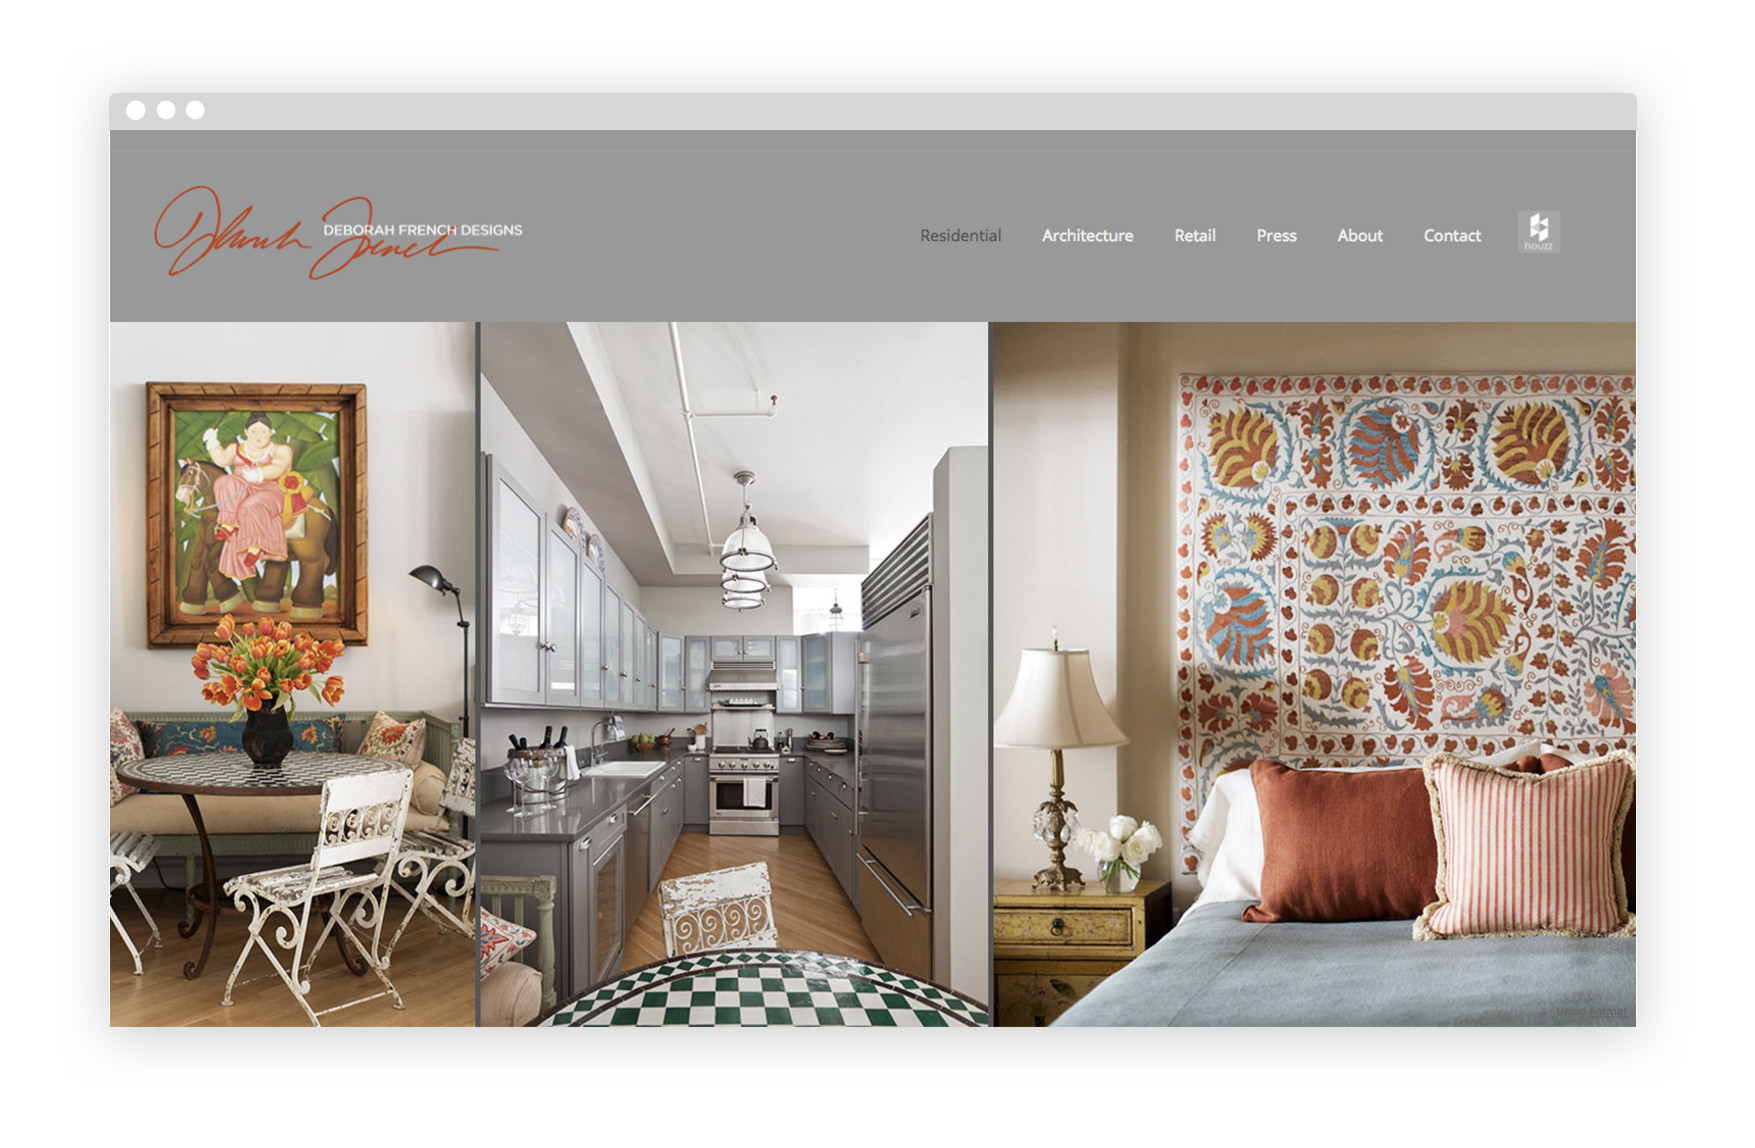 Merveilleux 12 Interior Design Portfolio Website Examples We Love